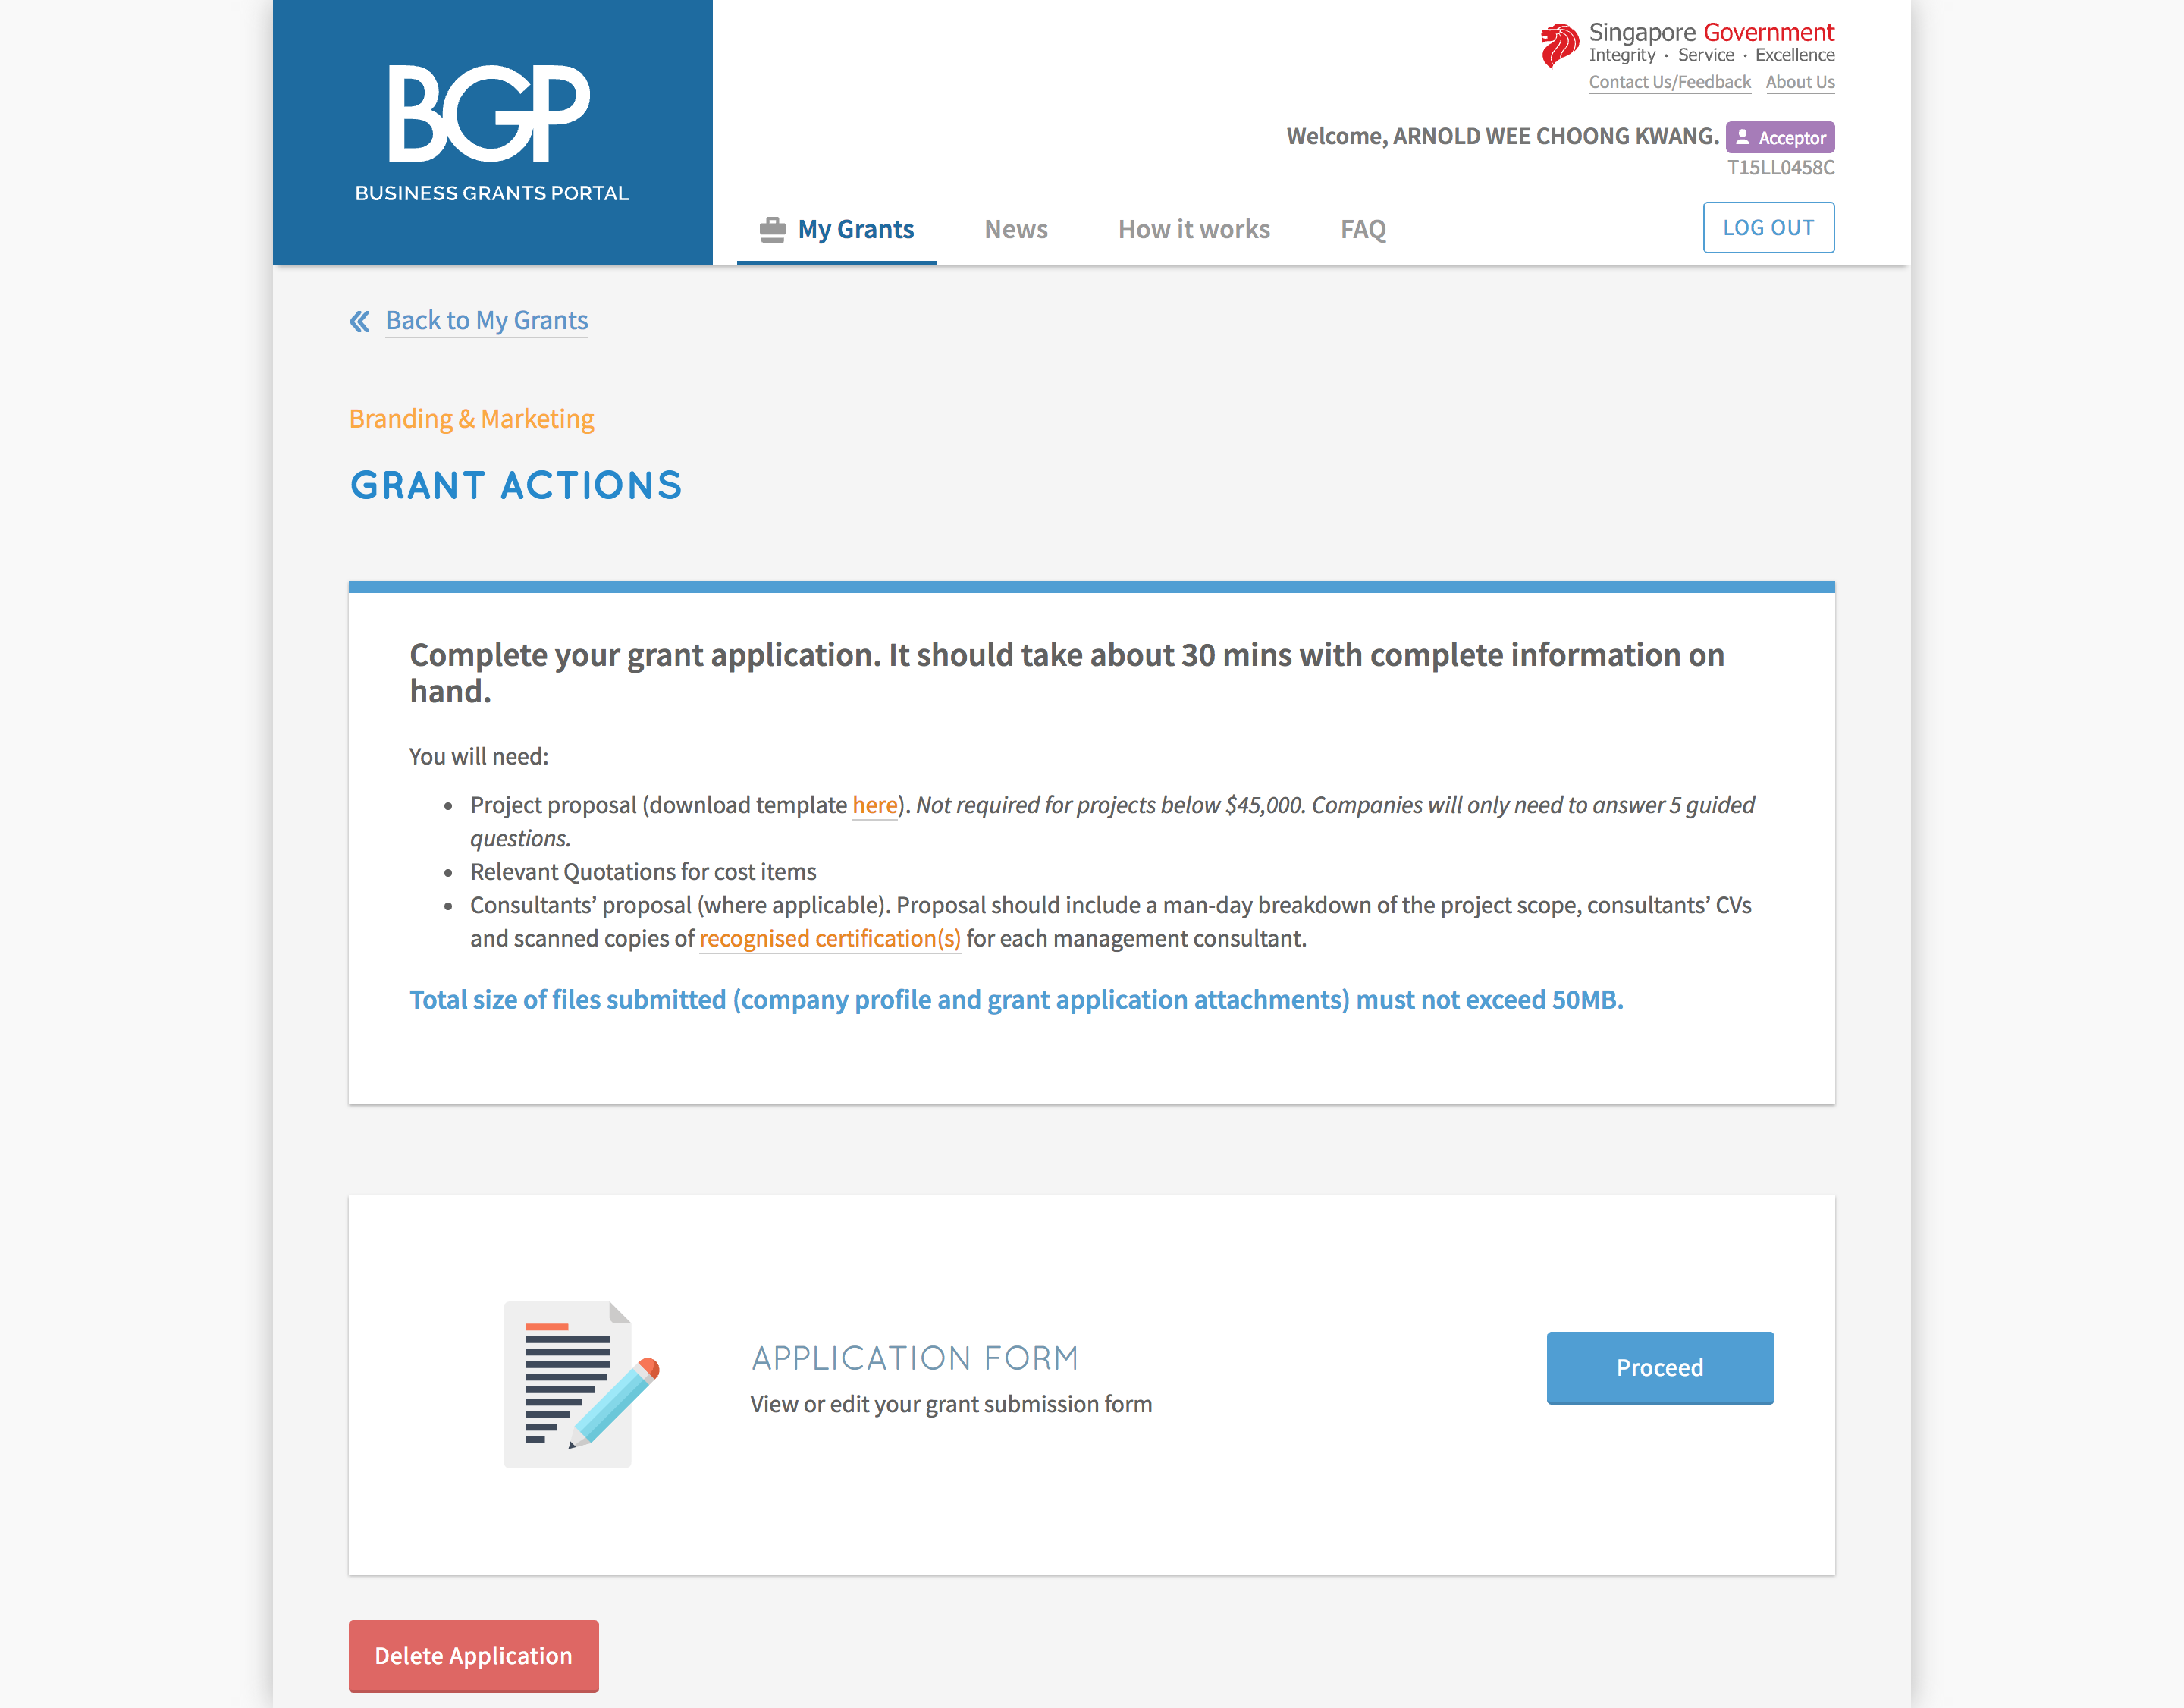 spring-cdg-business-grants-portal-1